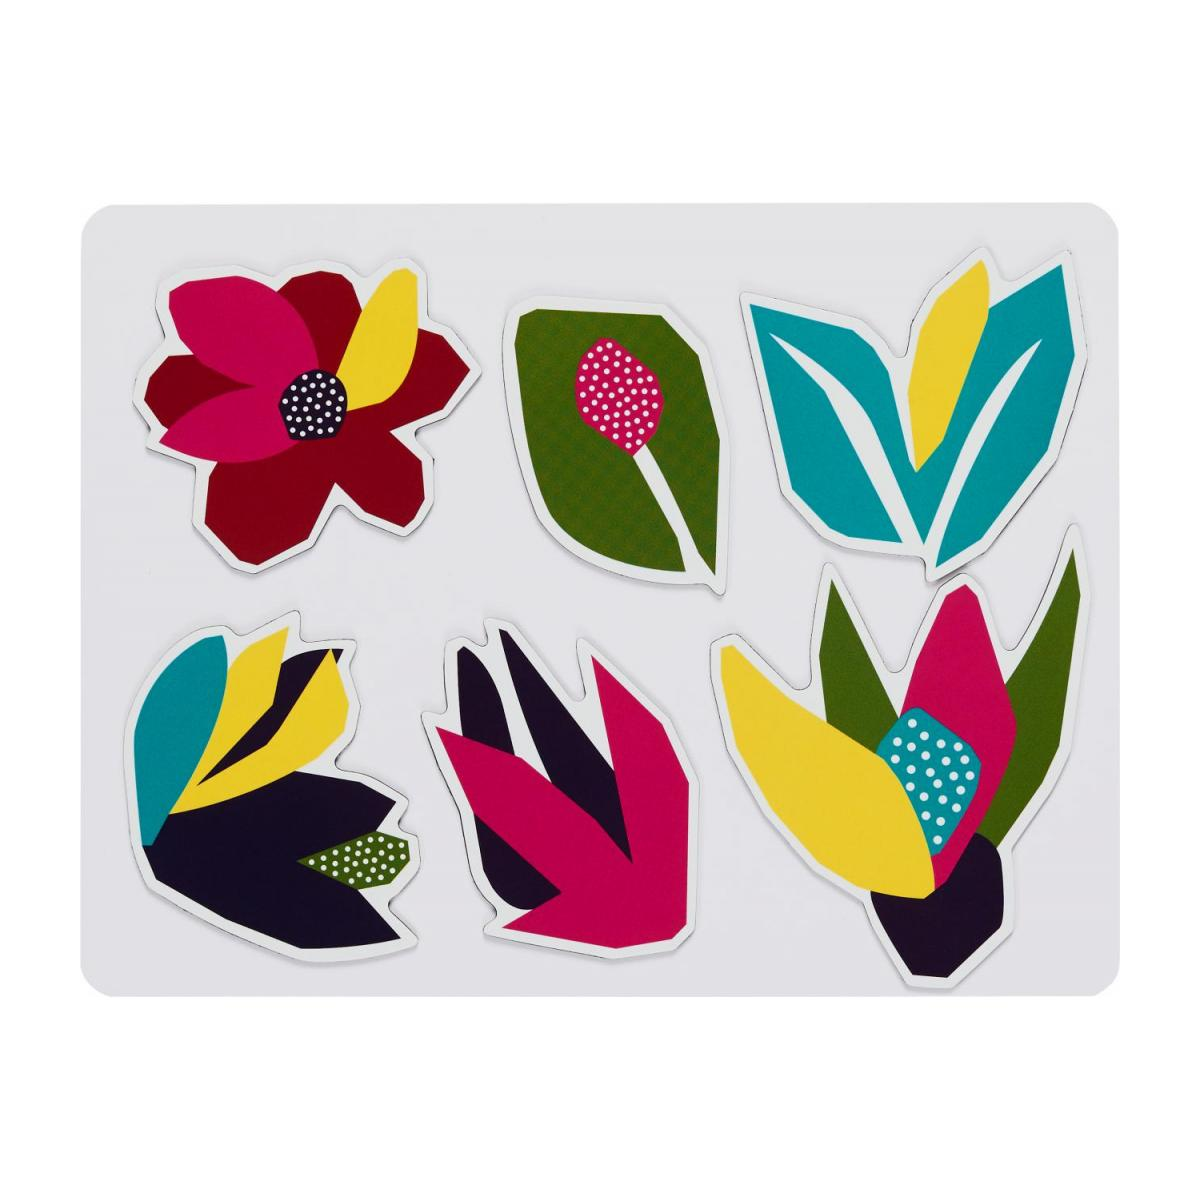 Lot de 6 magnets - Motif Narcisse n°1